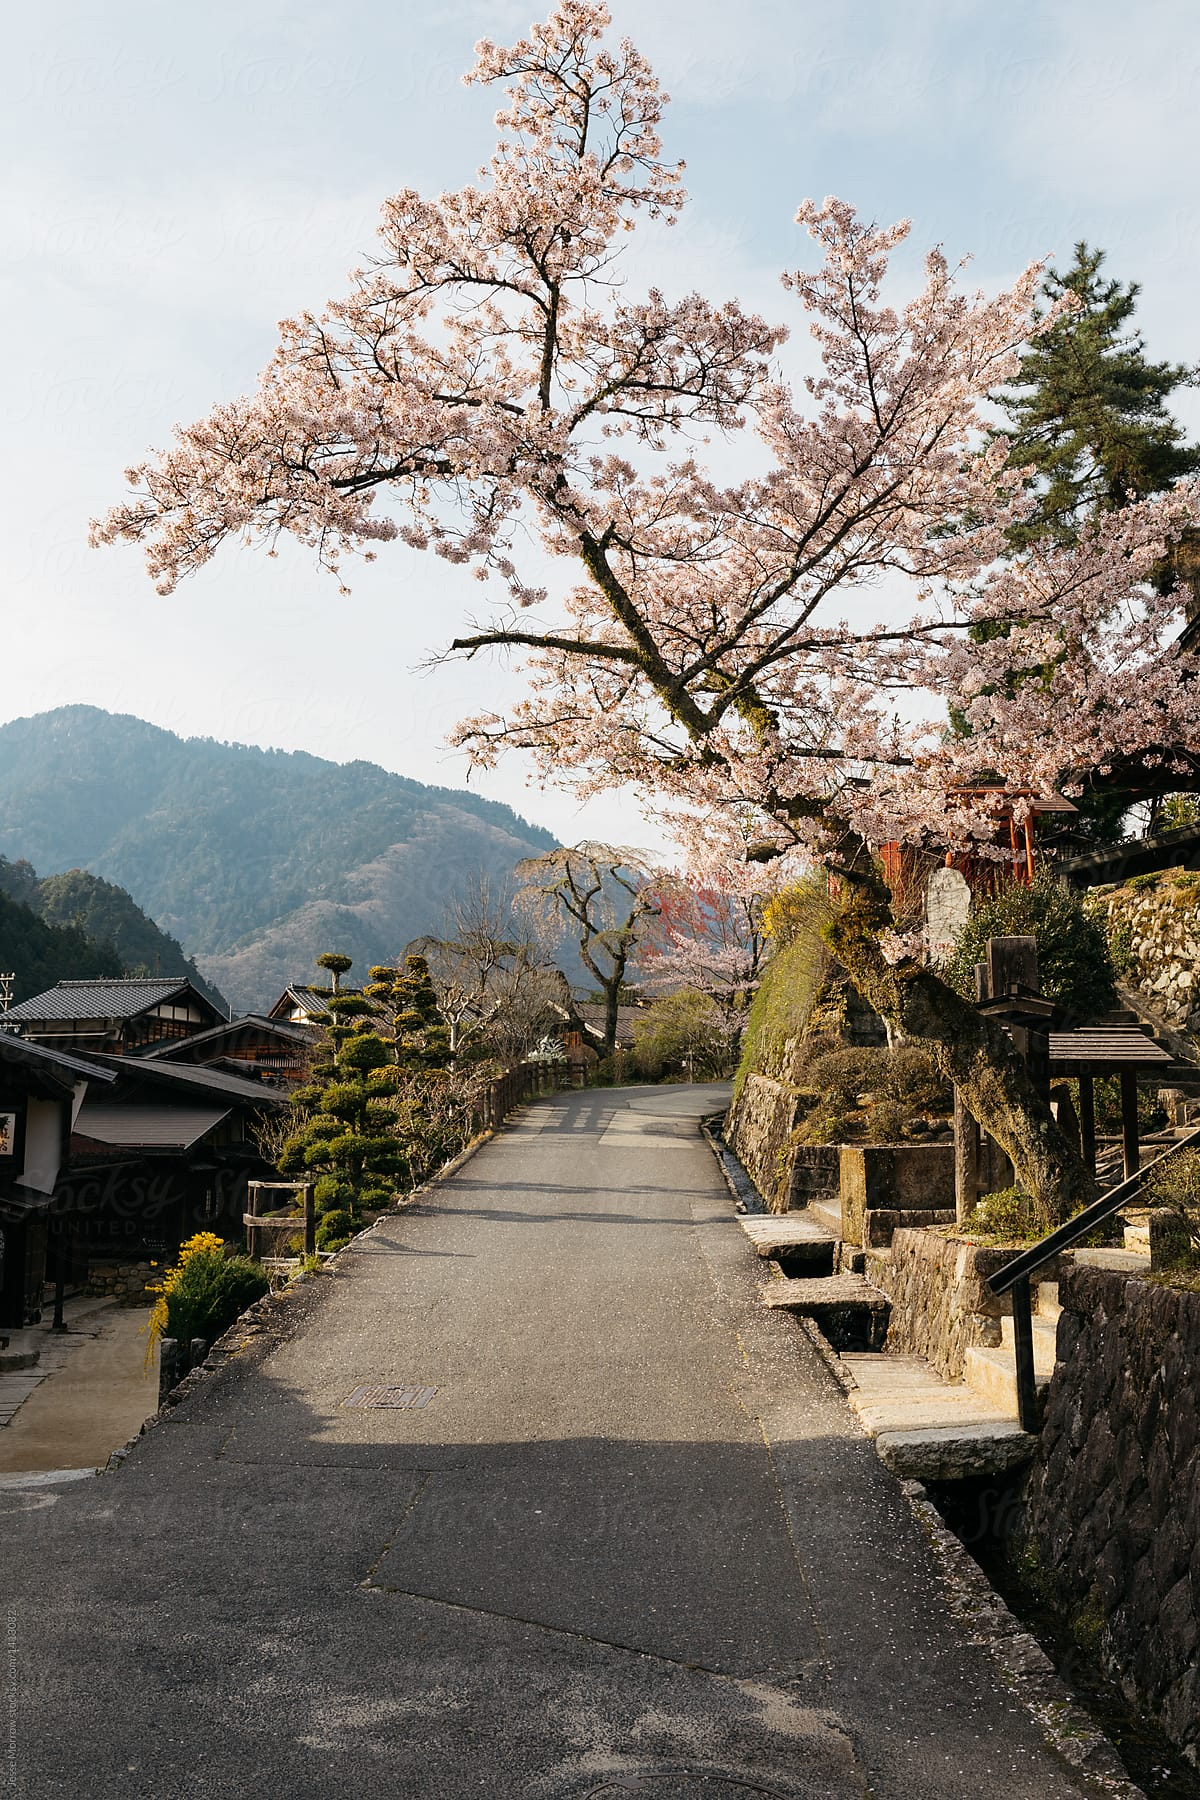 View Of Small Traditional Home In Japanese Village Country Side